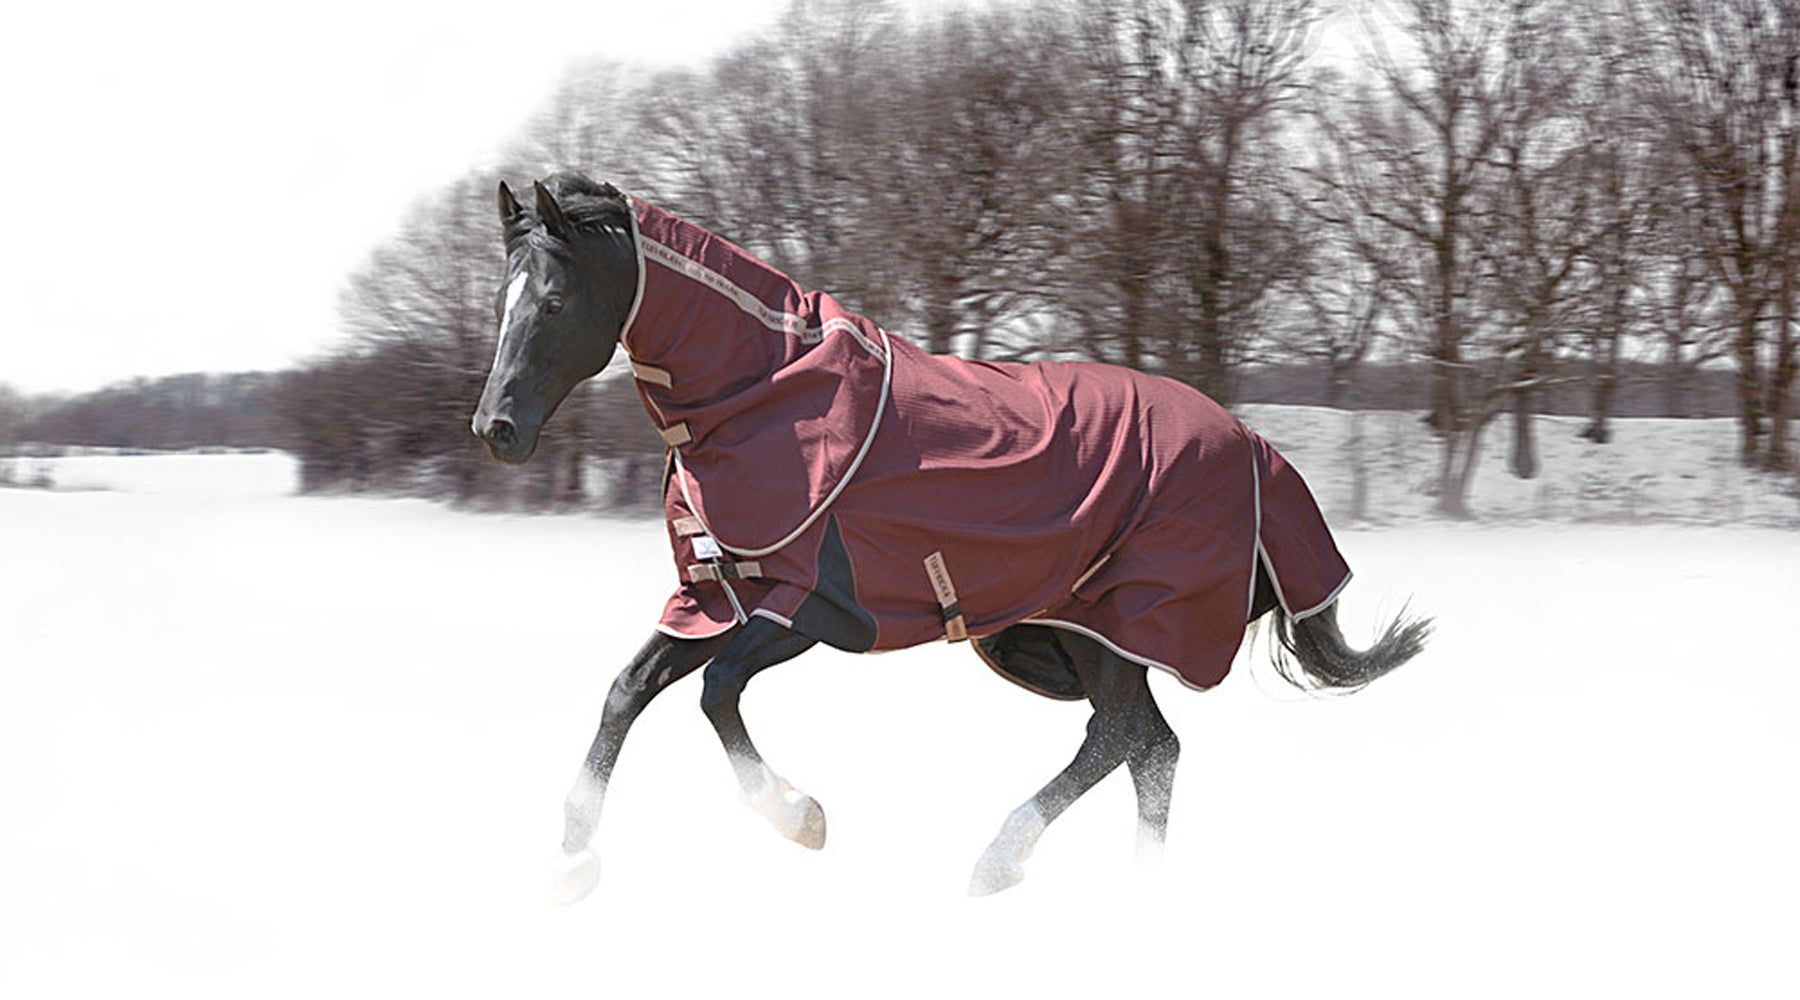 Grab Your Helmet, Long Socks, Winter Boots and Gloves! We're Going to the Barn!